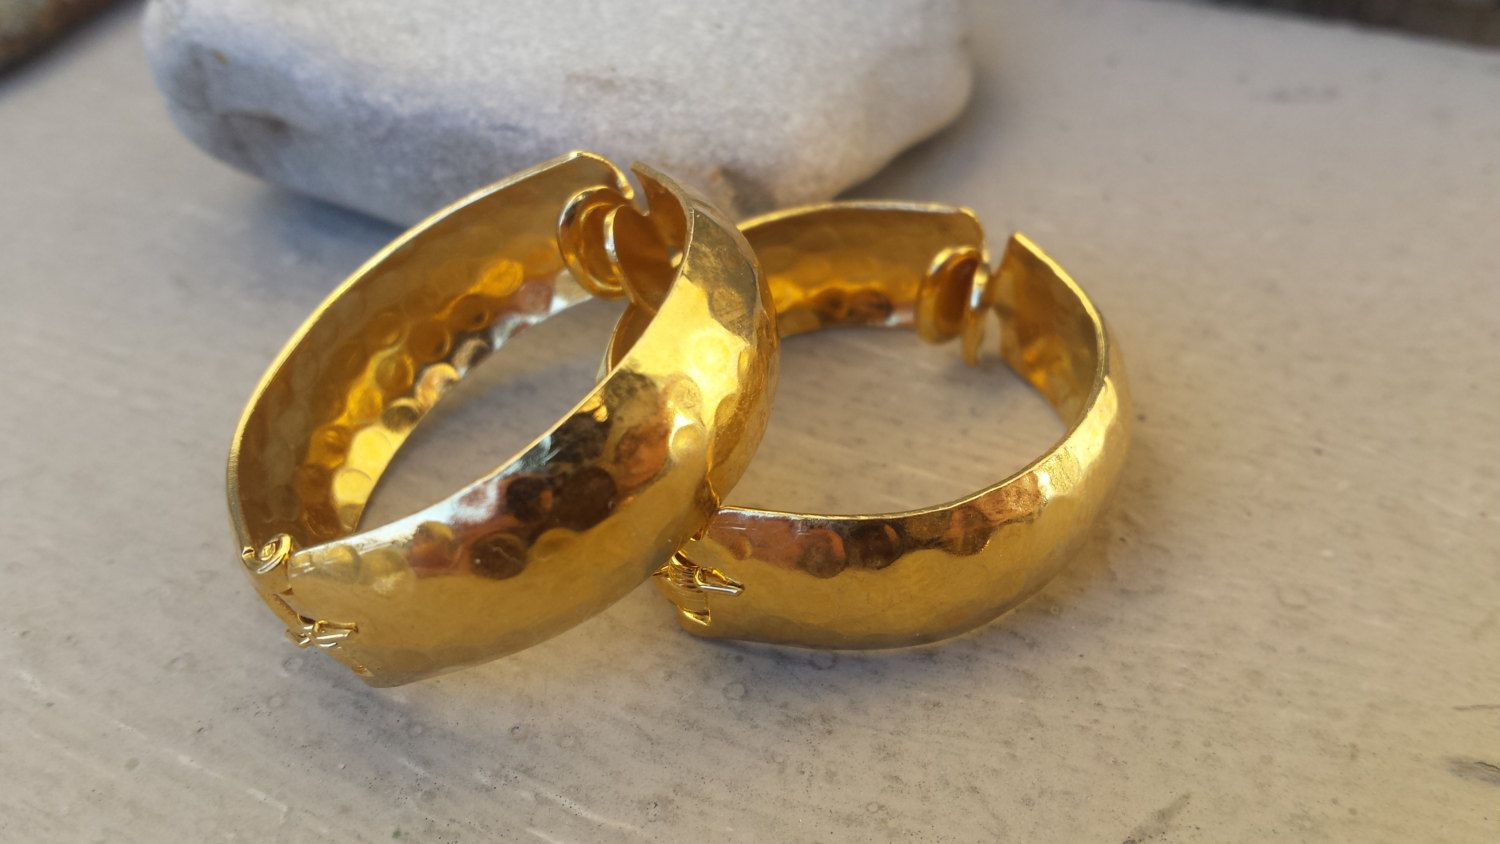 Gold Hammered Hoop Clip On Pierced Look Earrings 70s Vintage Tone Gypsy Pirate Metal By Thefoxandfilly